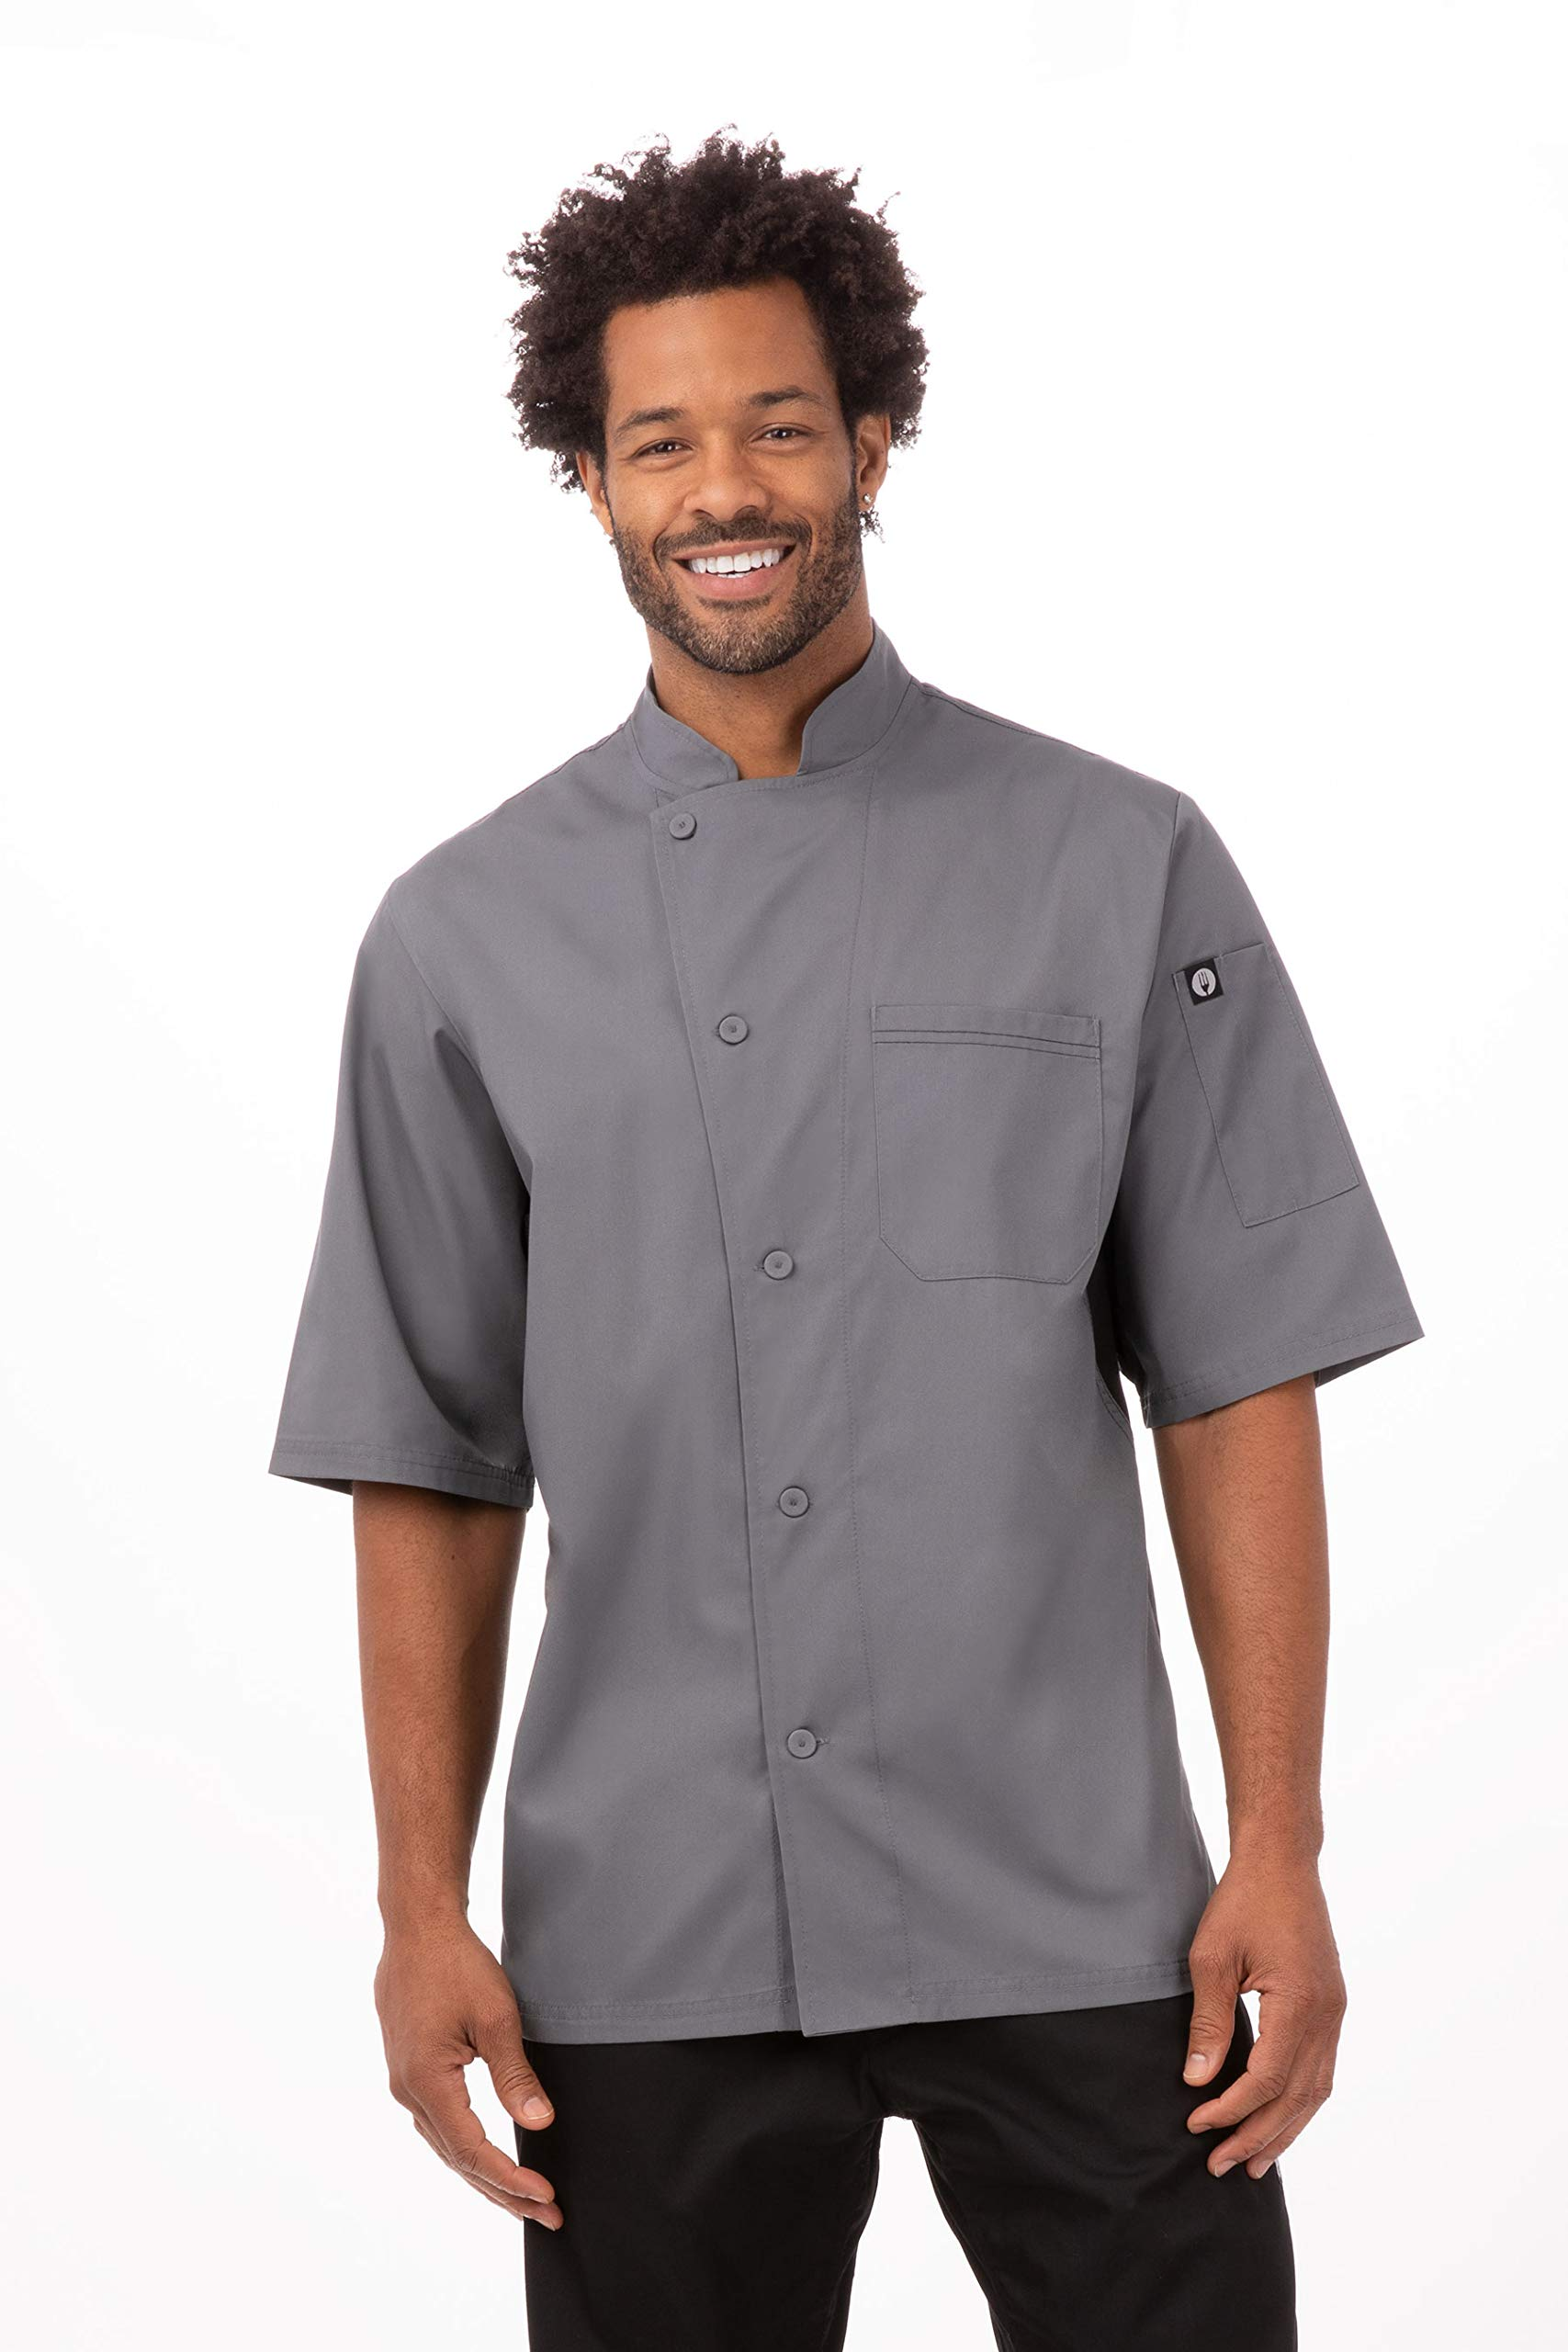 Chef Works Women's Valais V-Series Chef Coat, Dark Gray W/Black Contrast, 2X-Large by Chef Works